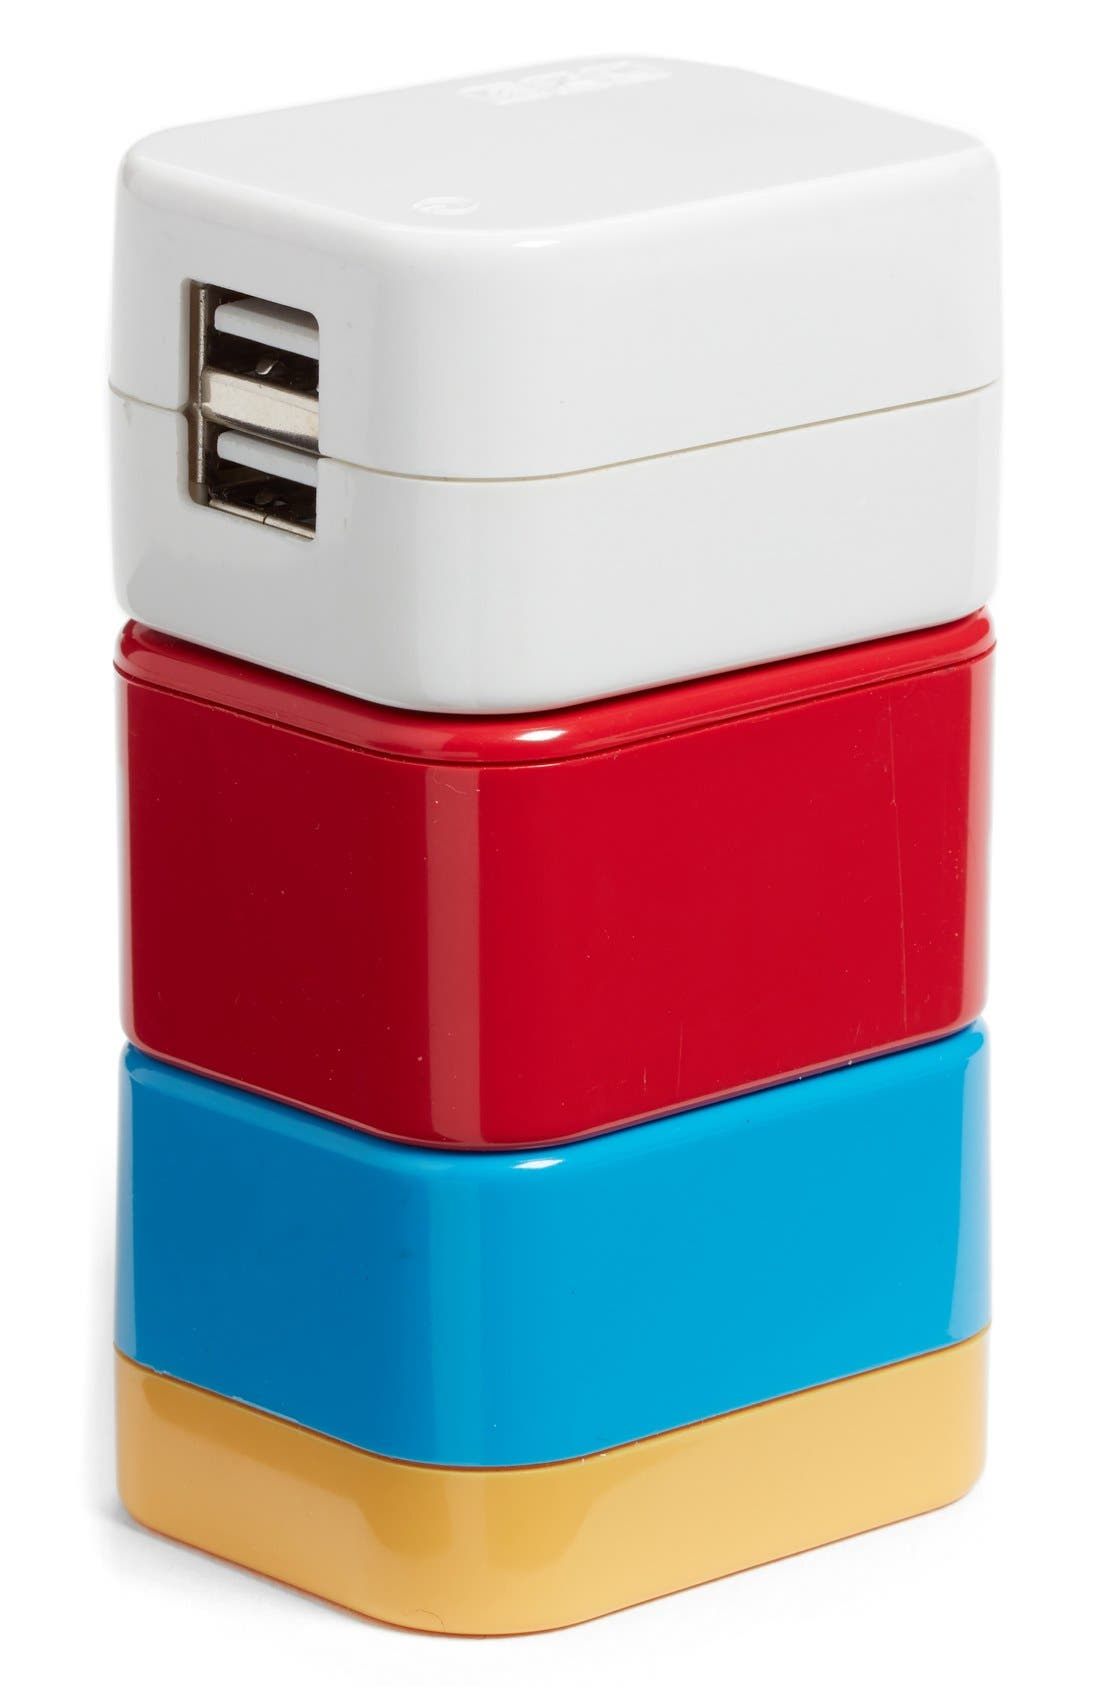 5-in-1 Universal Travel Adapter,                             Main thumbnail 1, color,